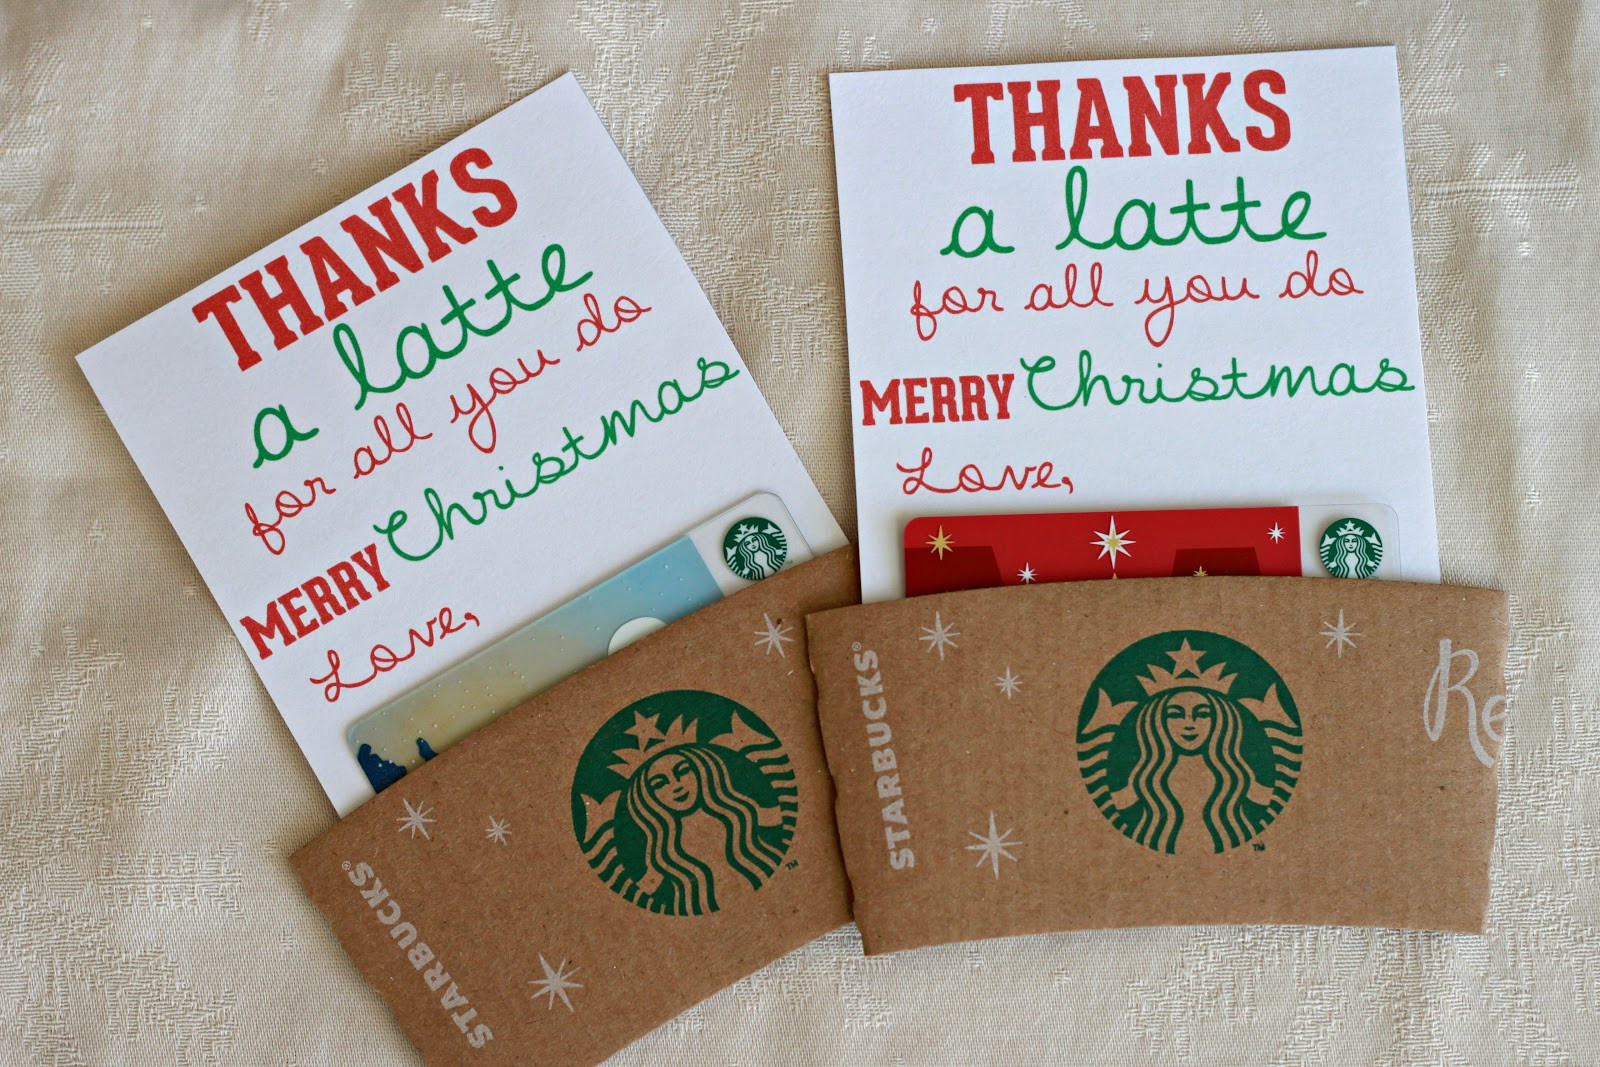 DIY Christmas Gift For Teachers  Man Starkey thanks a latte